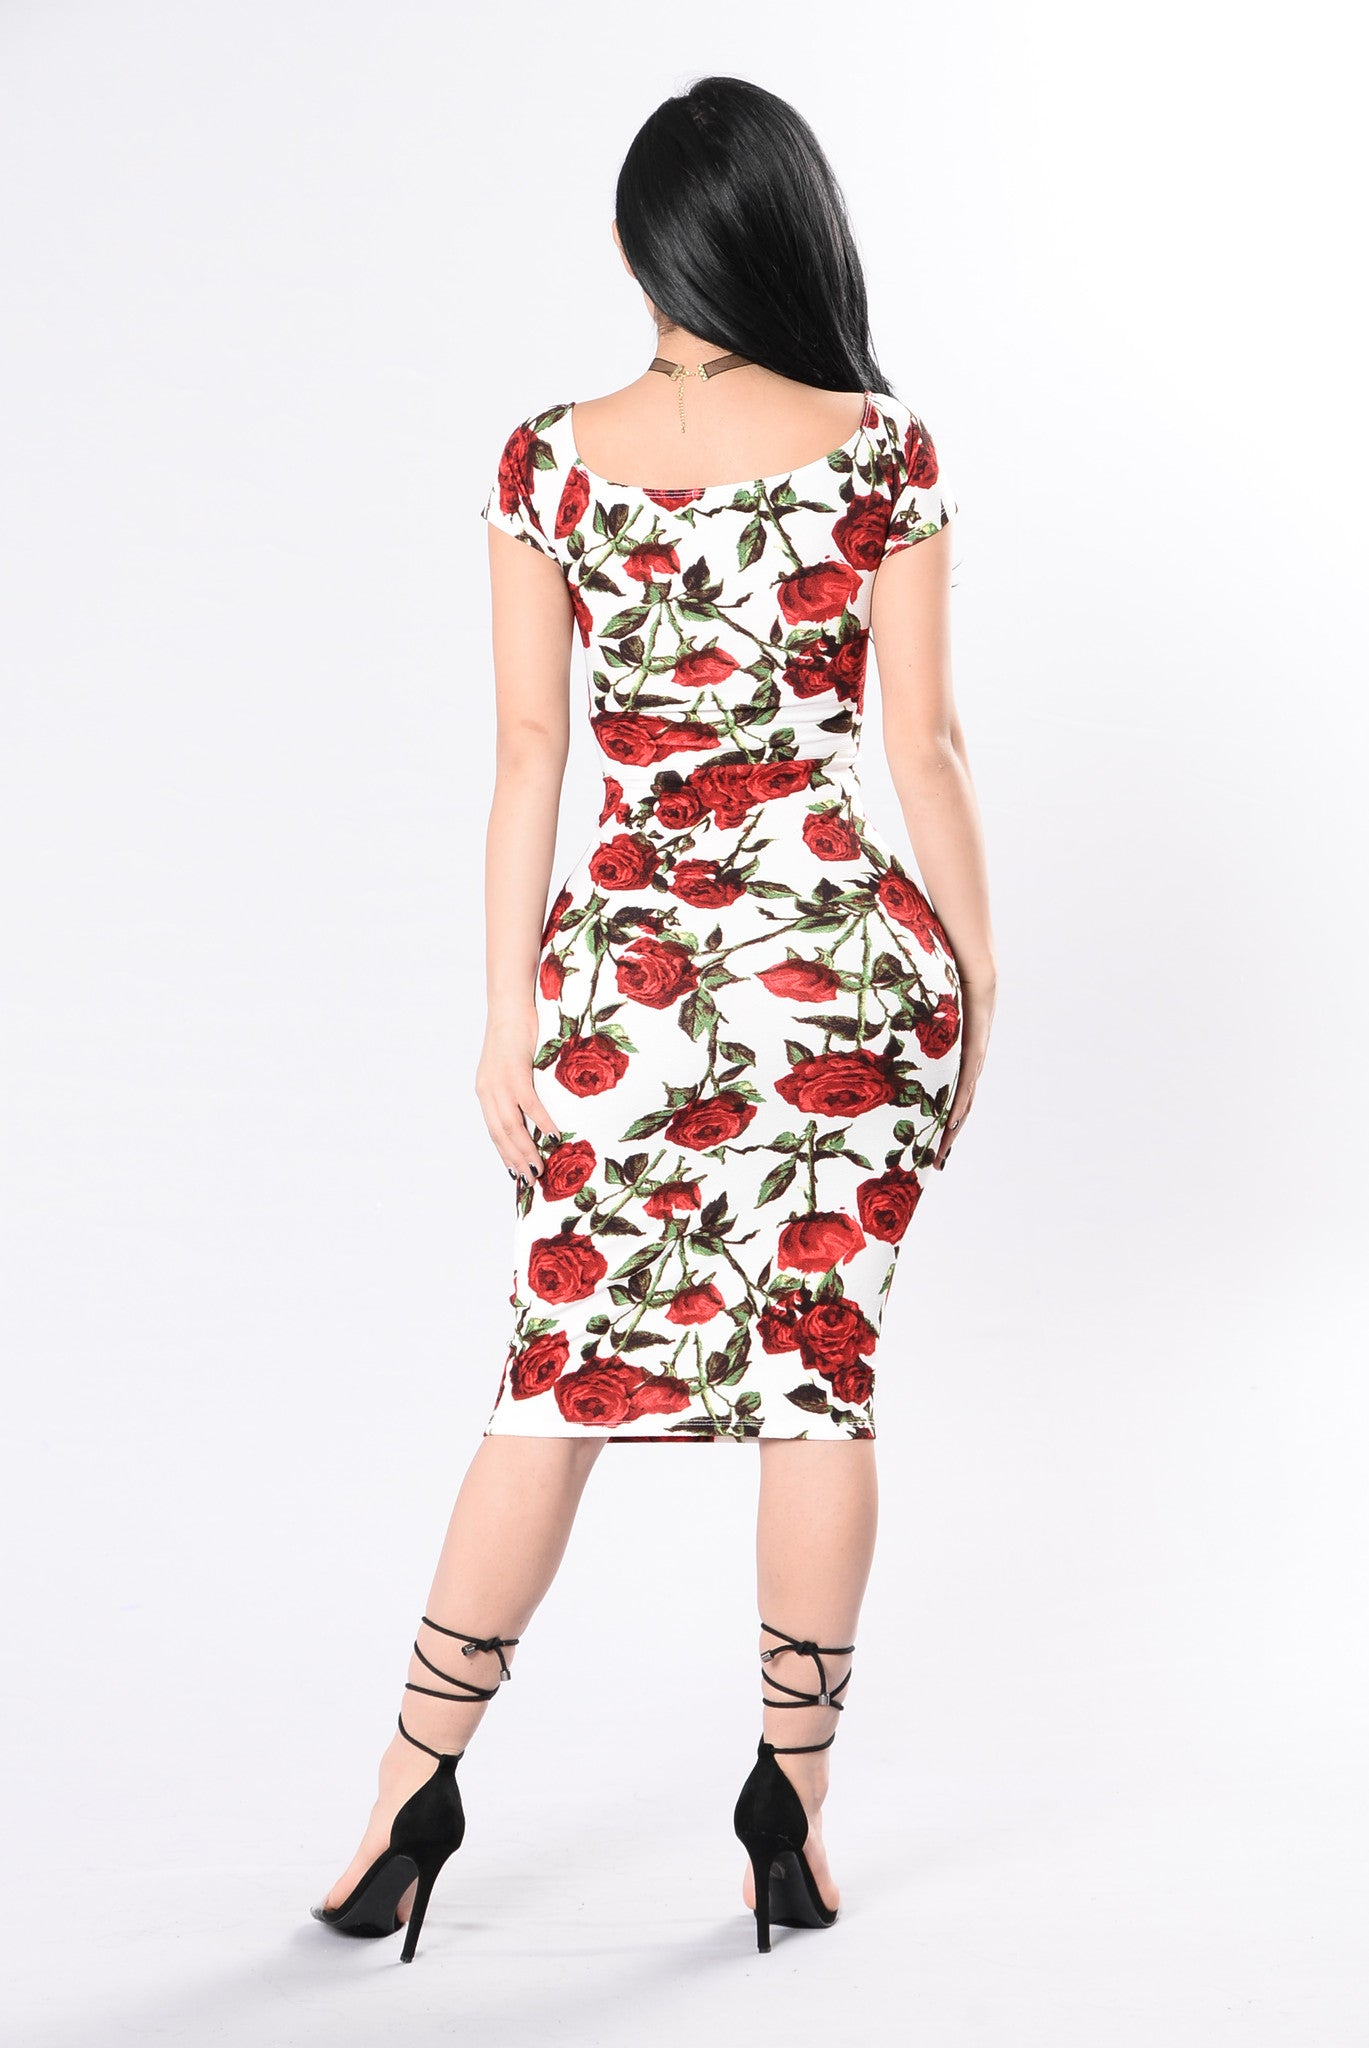 Be My Valentine Dress   Ivory/Red